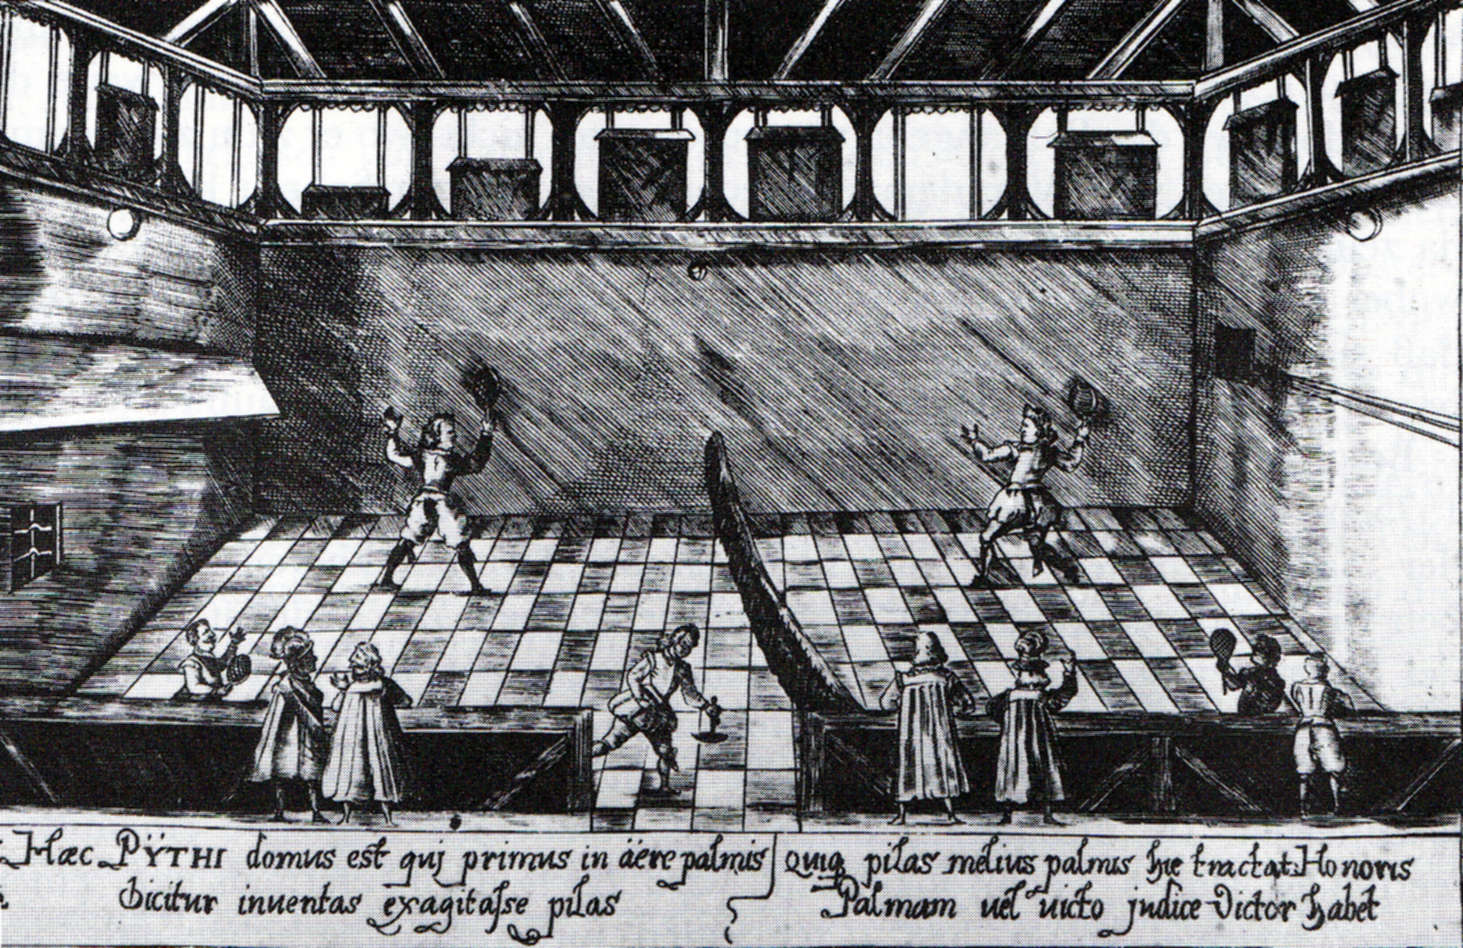 Copper engraving of a tennis game at the College Illustre (university) of Tübingen, Germany